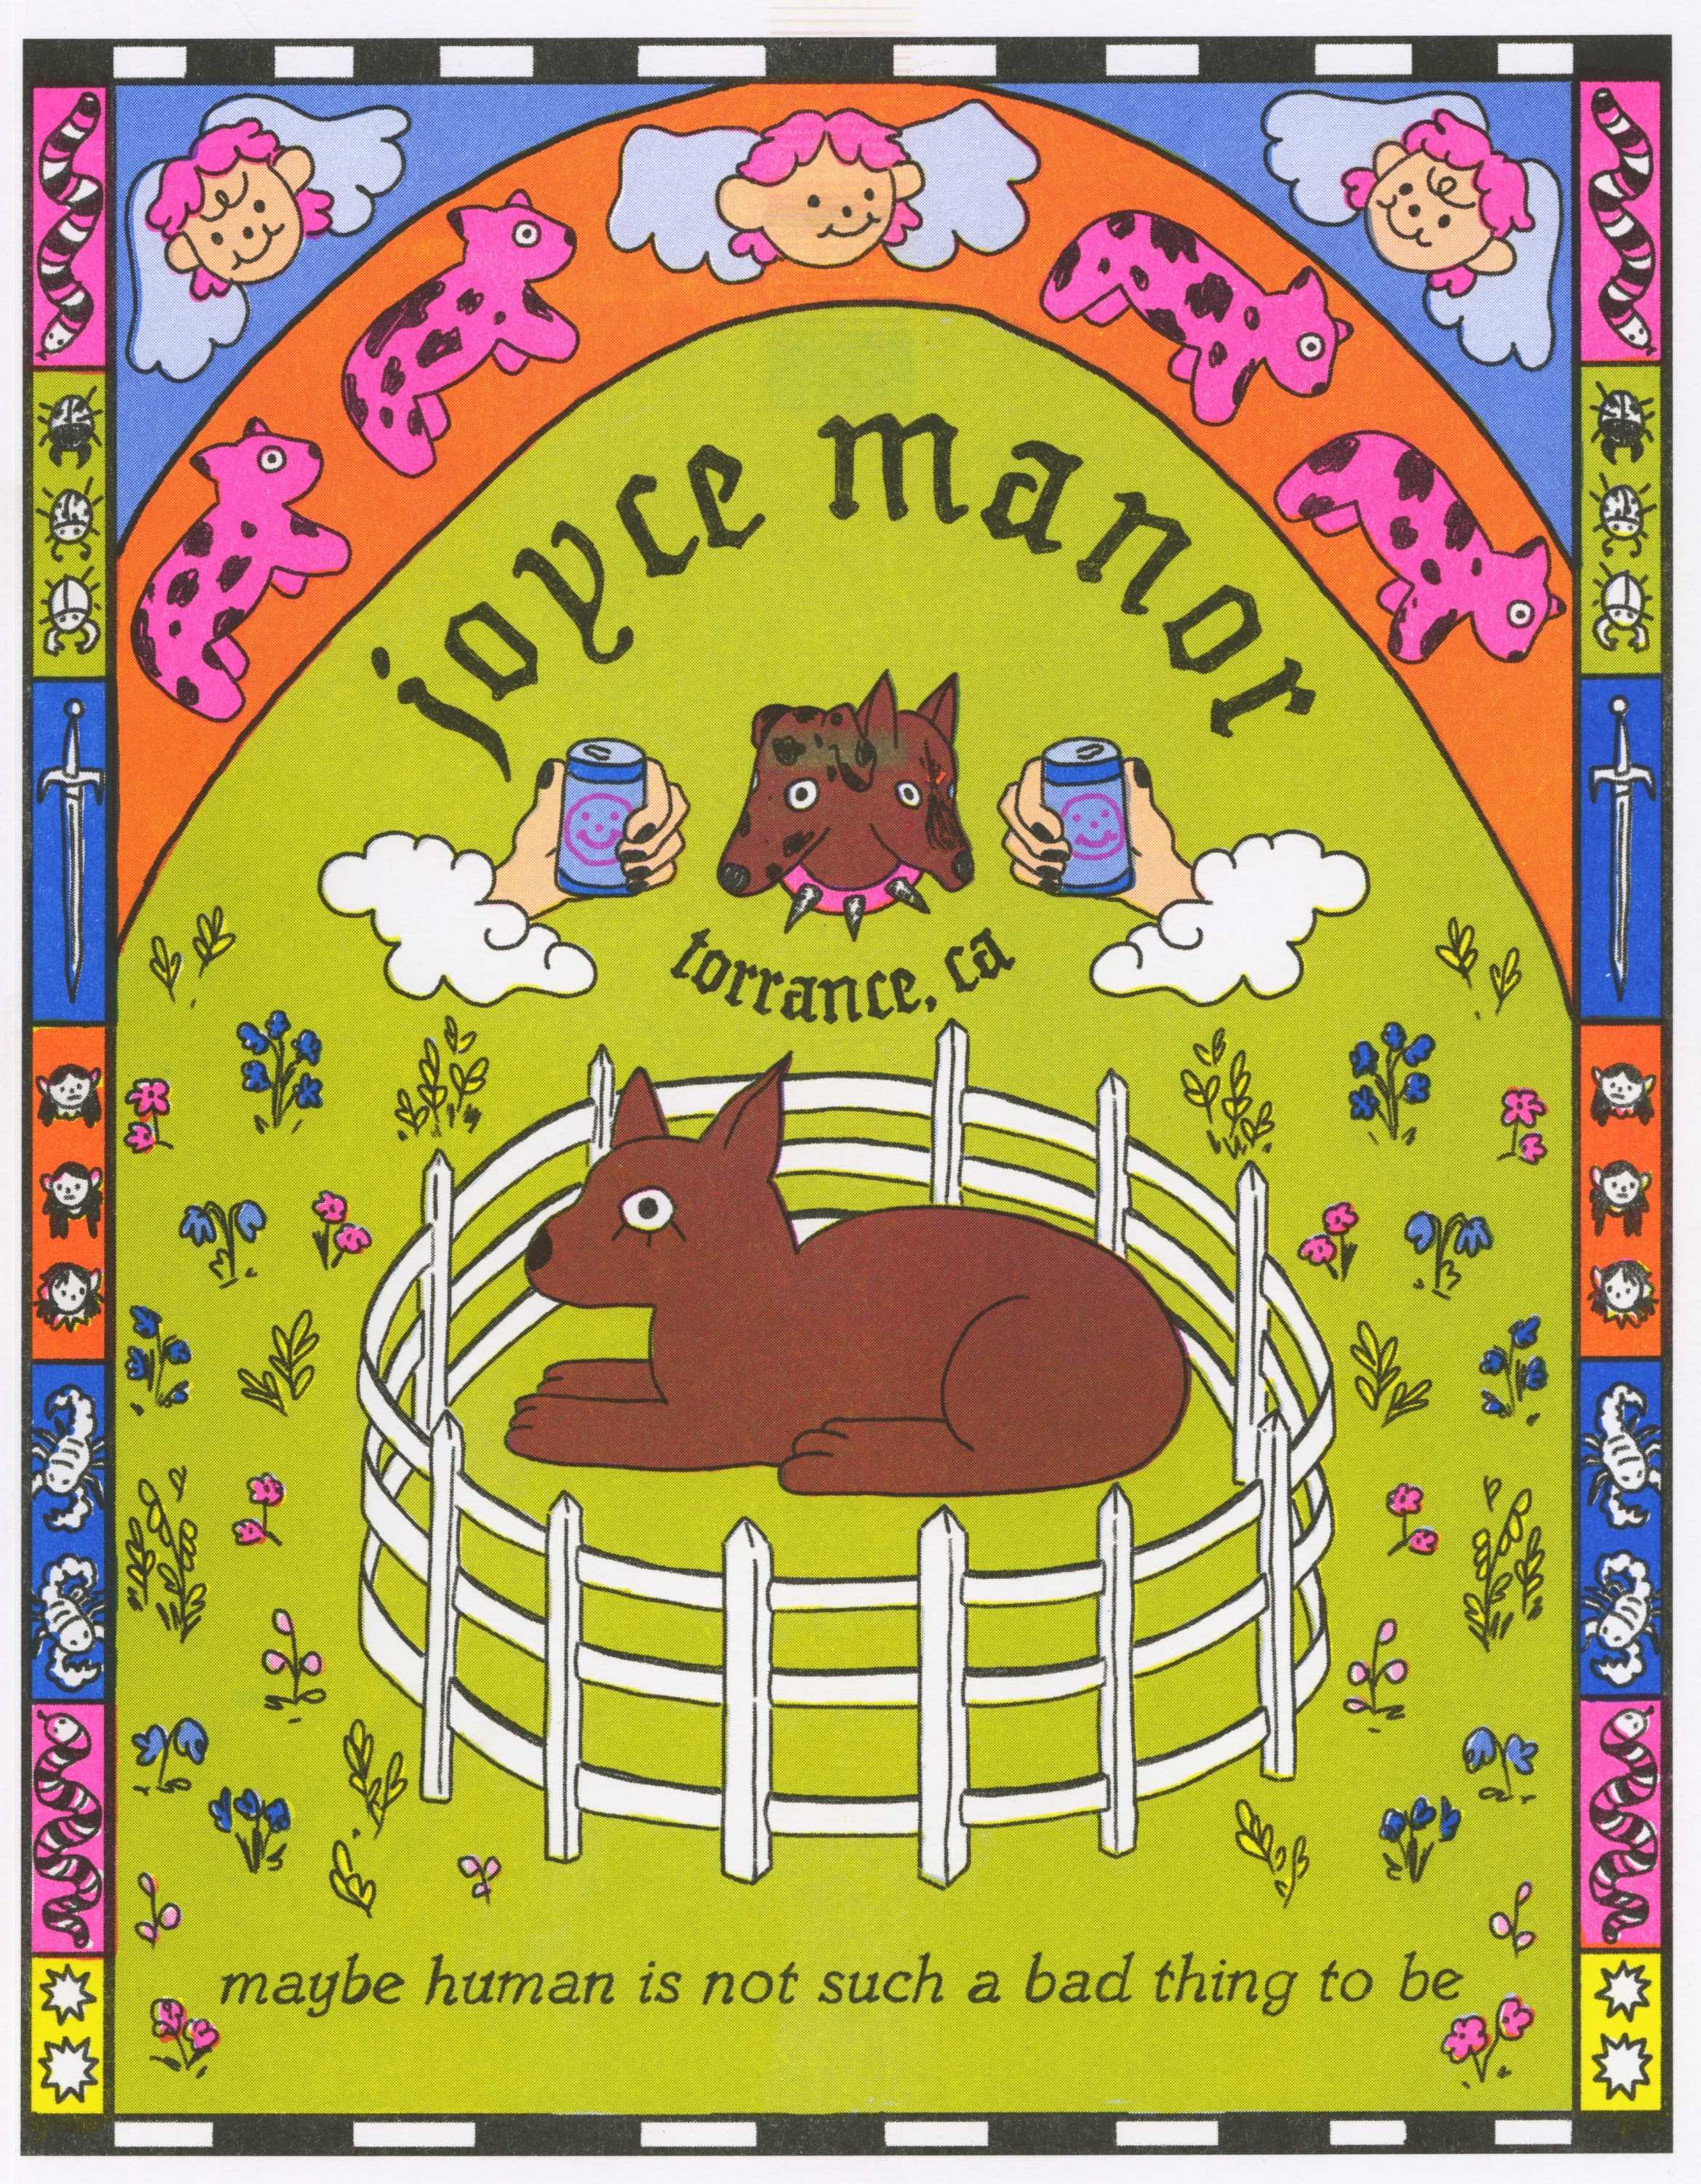 """A brightly colored poster that reads """"Joyce Manor torrance, ca"""" in an arch towards the middle of the page with """"maybe human is not such a bad thing to be"""" at the bottom of the page. At the top of the page there is an arch with a pink h"""